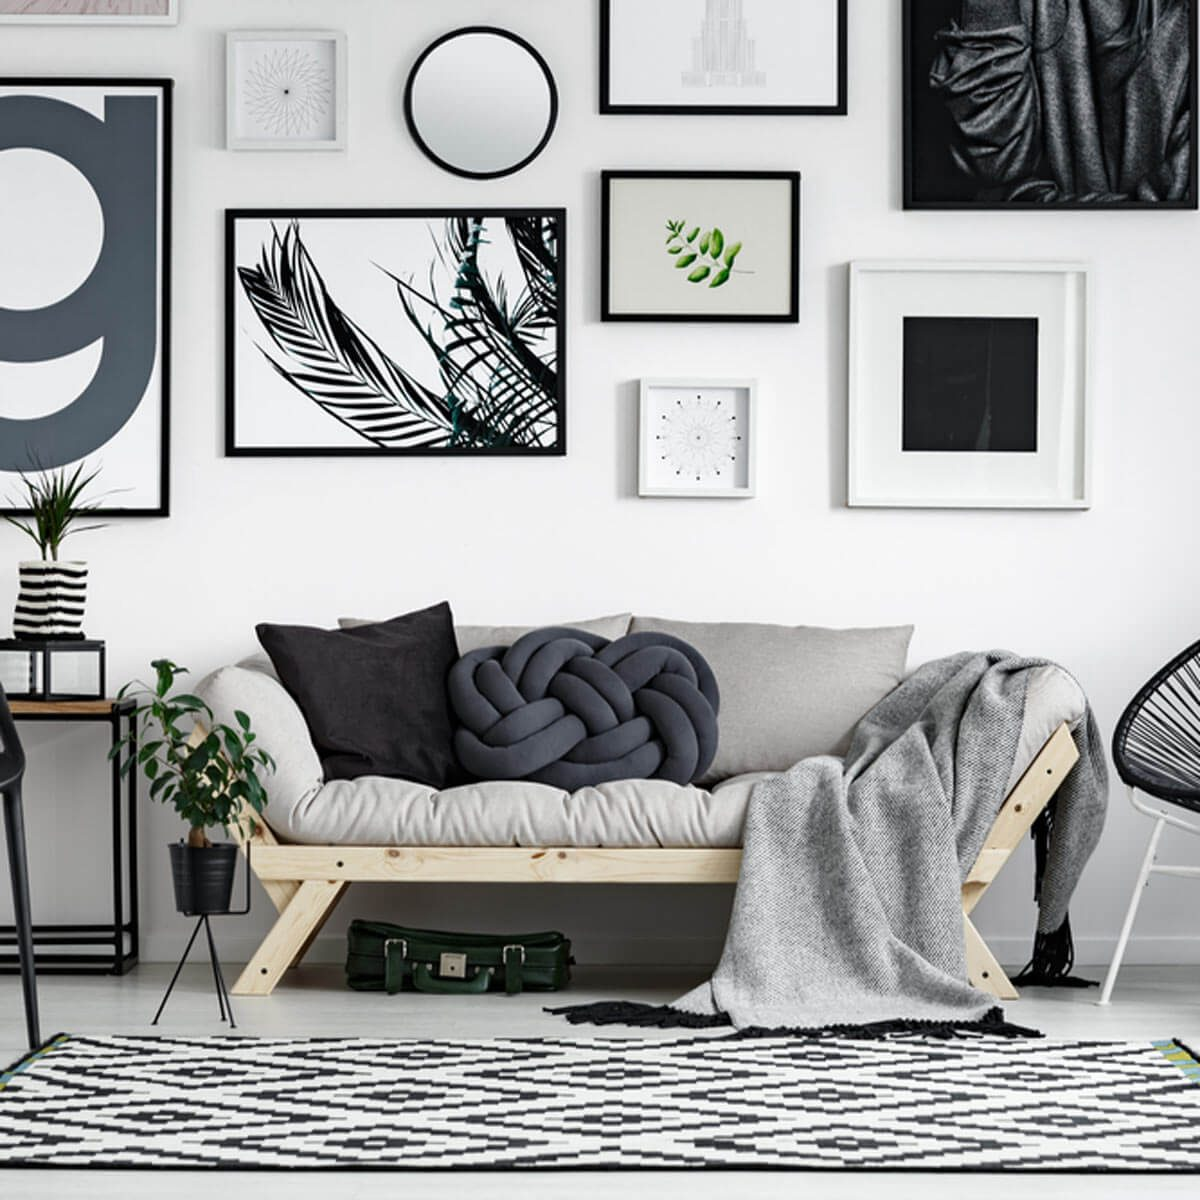 Top 10 Decorating Home Interiors 2018: 25 Trends In Home Decor For 2018